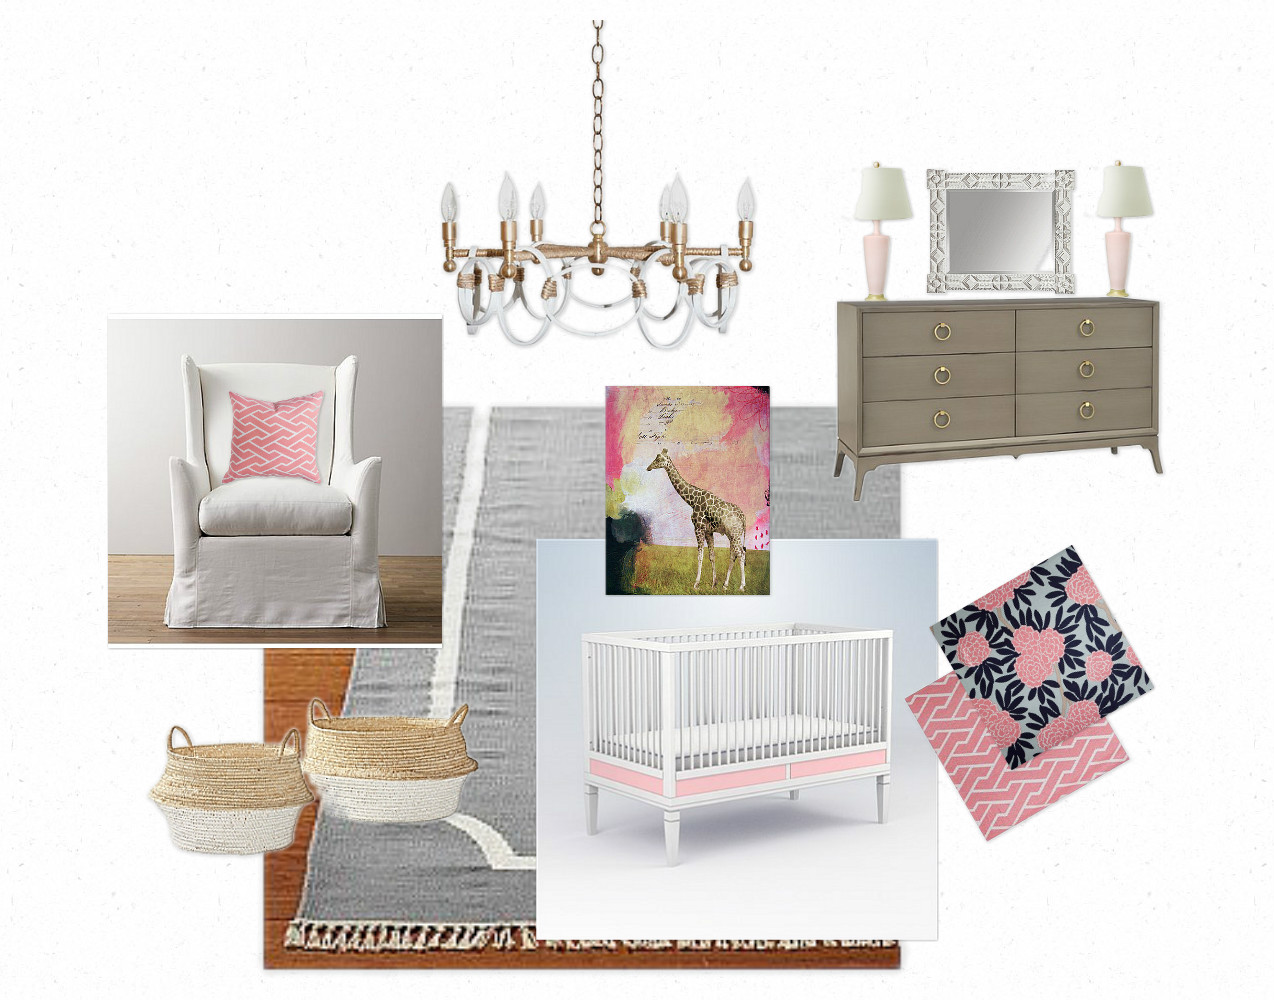 Nursery Design By Hanging With The Hewitts Designer Bags Dirty Diapers